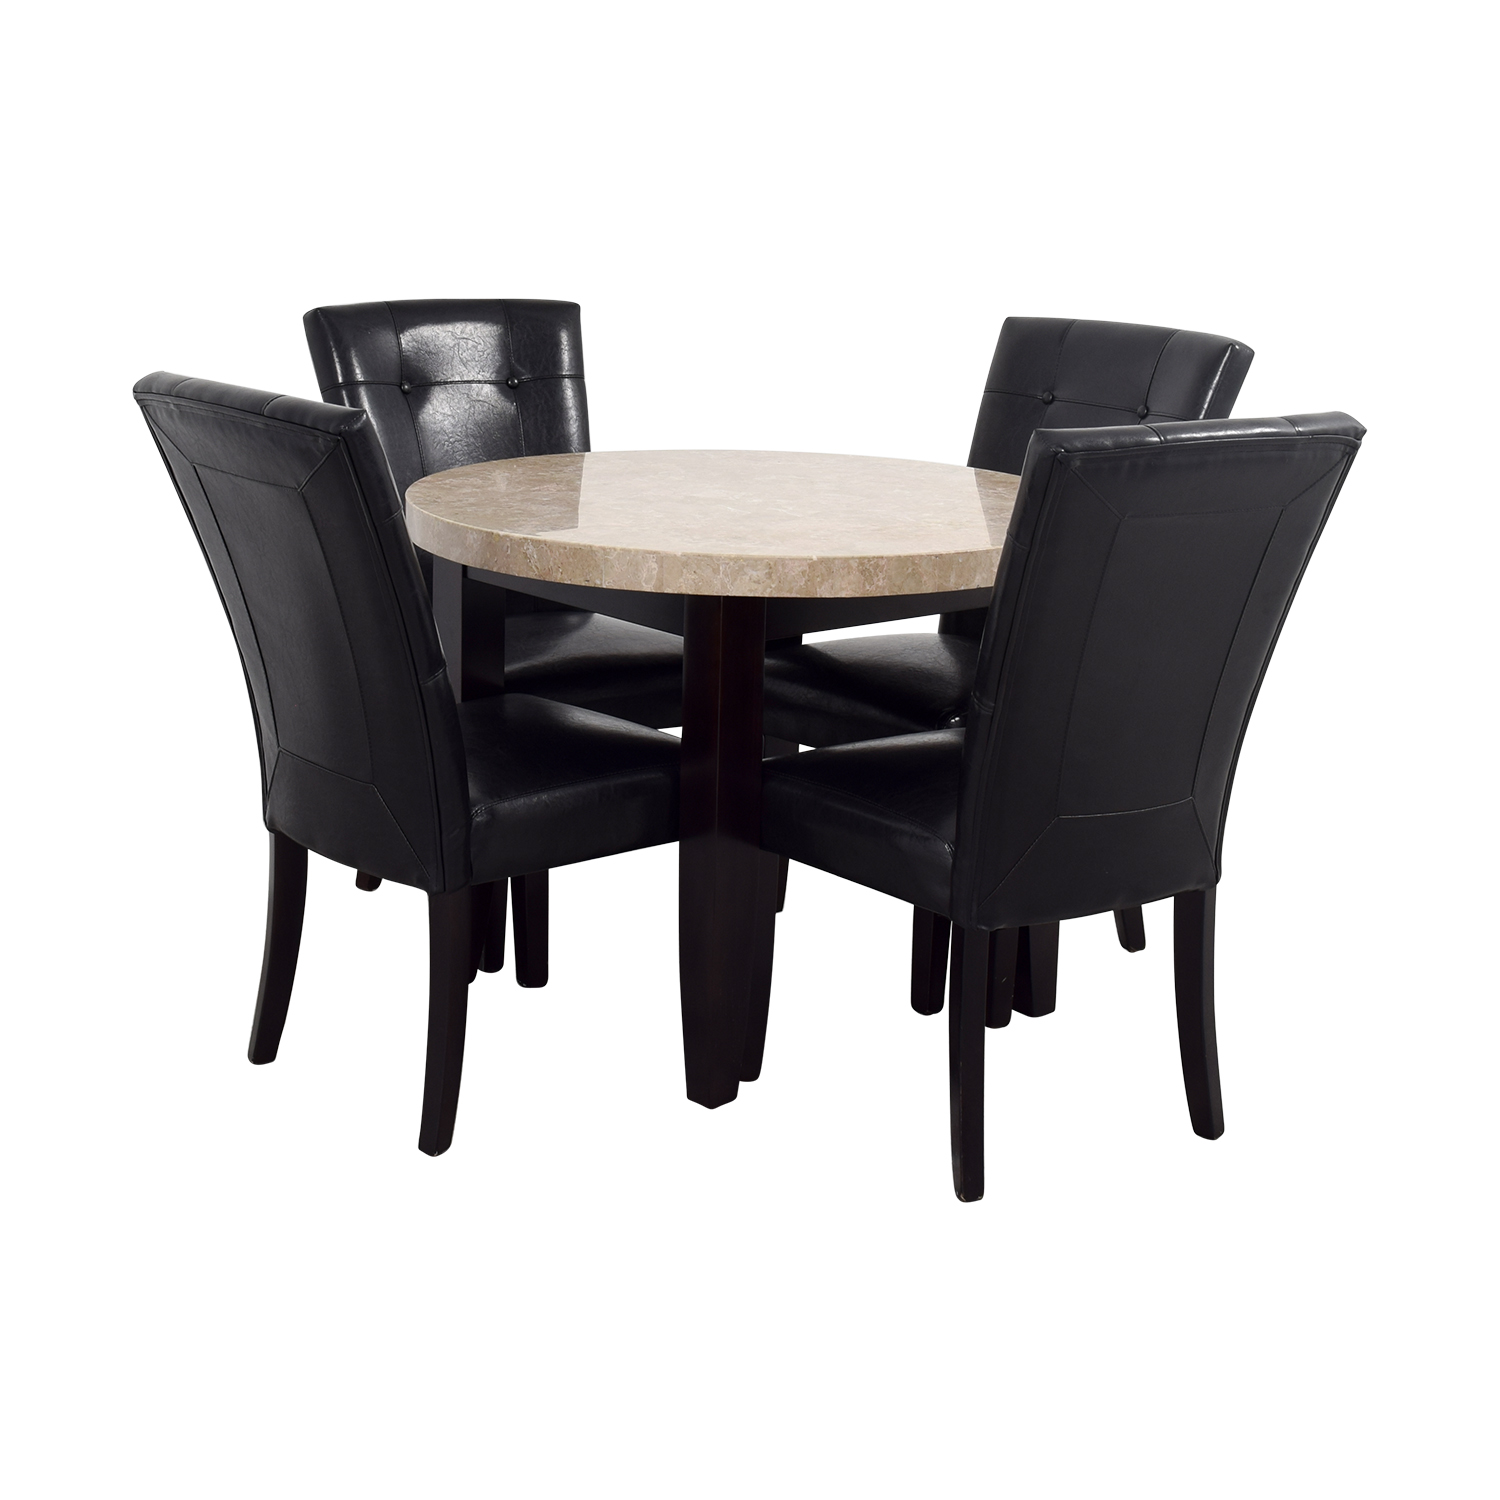 Bobs furniture dining